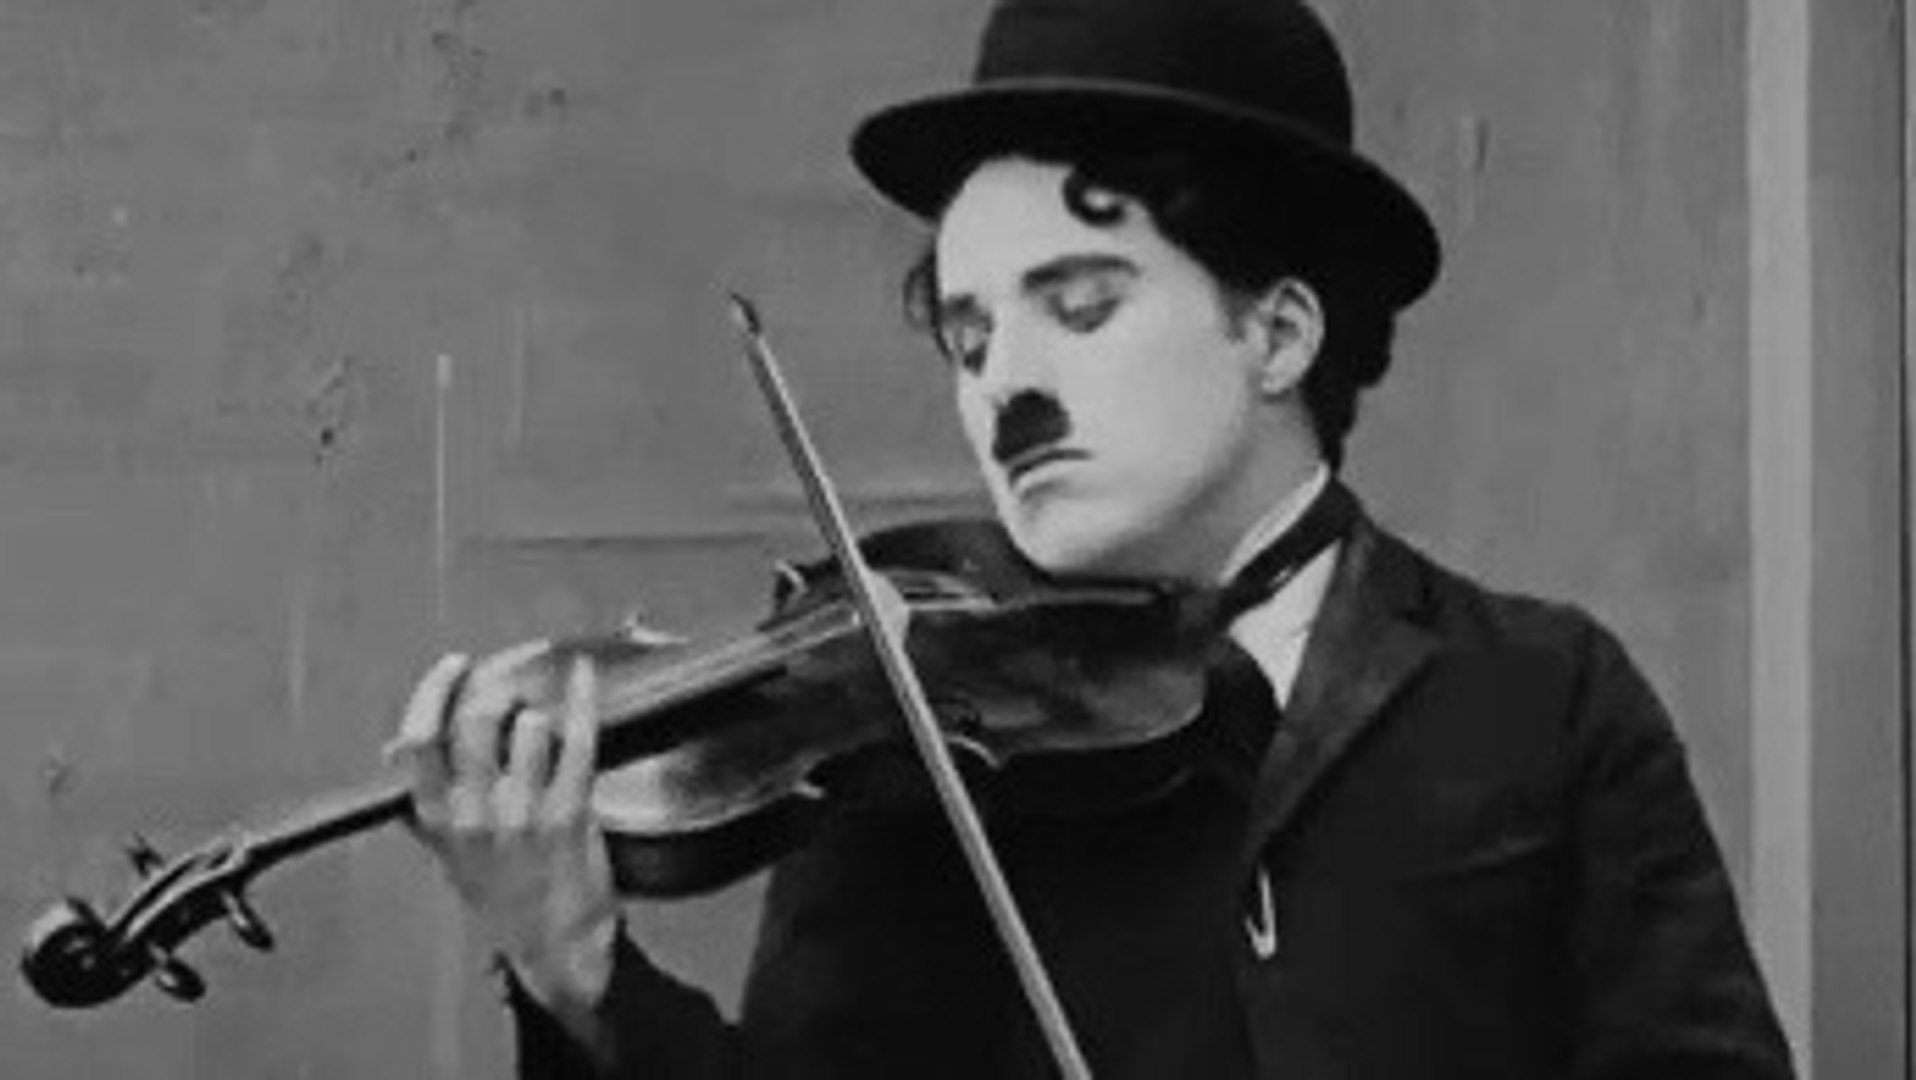 The Vagabond (1916) Charles Chaplin, Edna Purviance, Eric Campbell.  Short, Comedy, Romance